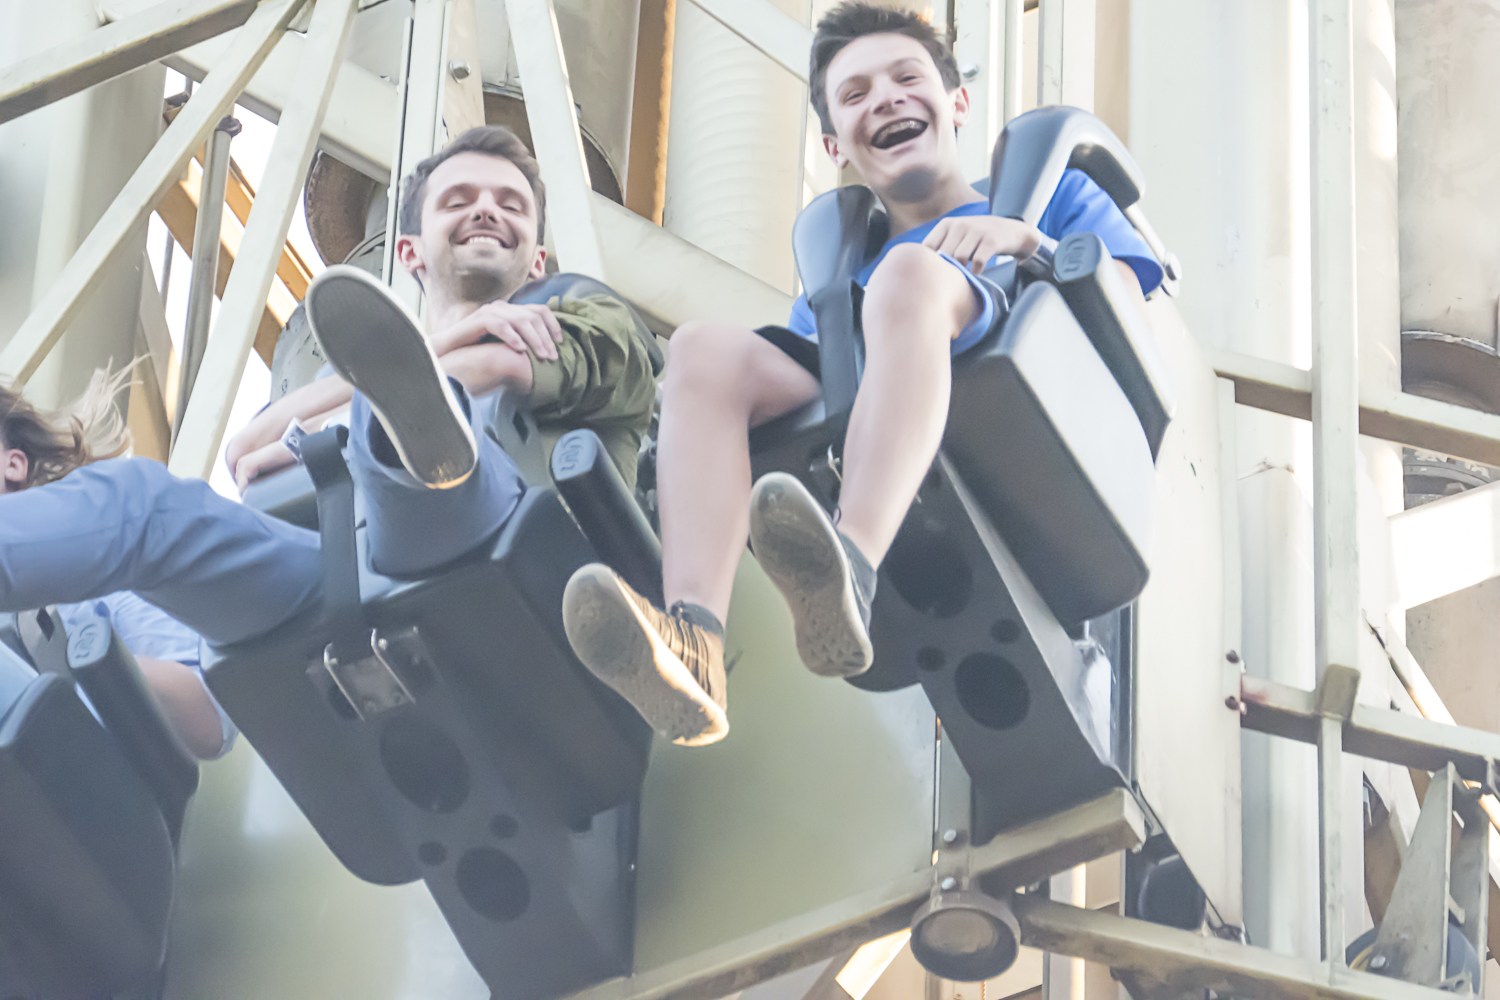 This ride in Tivoli Garden is a free fall from a great height.